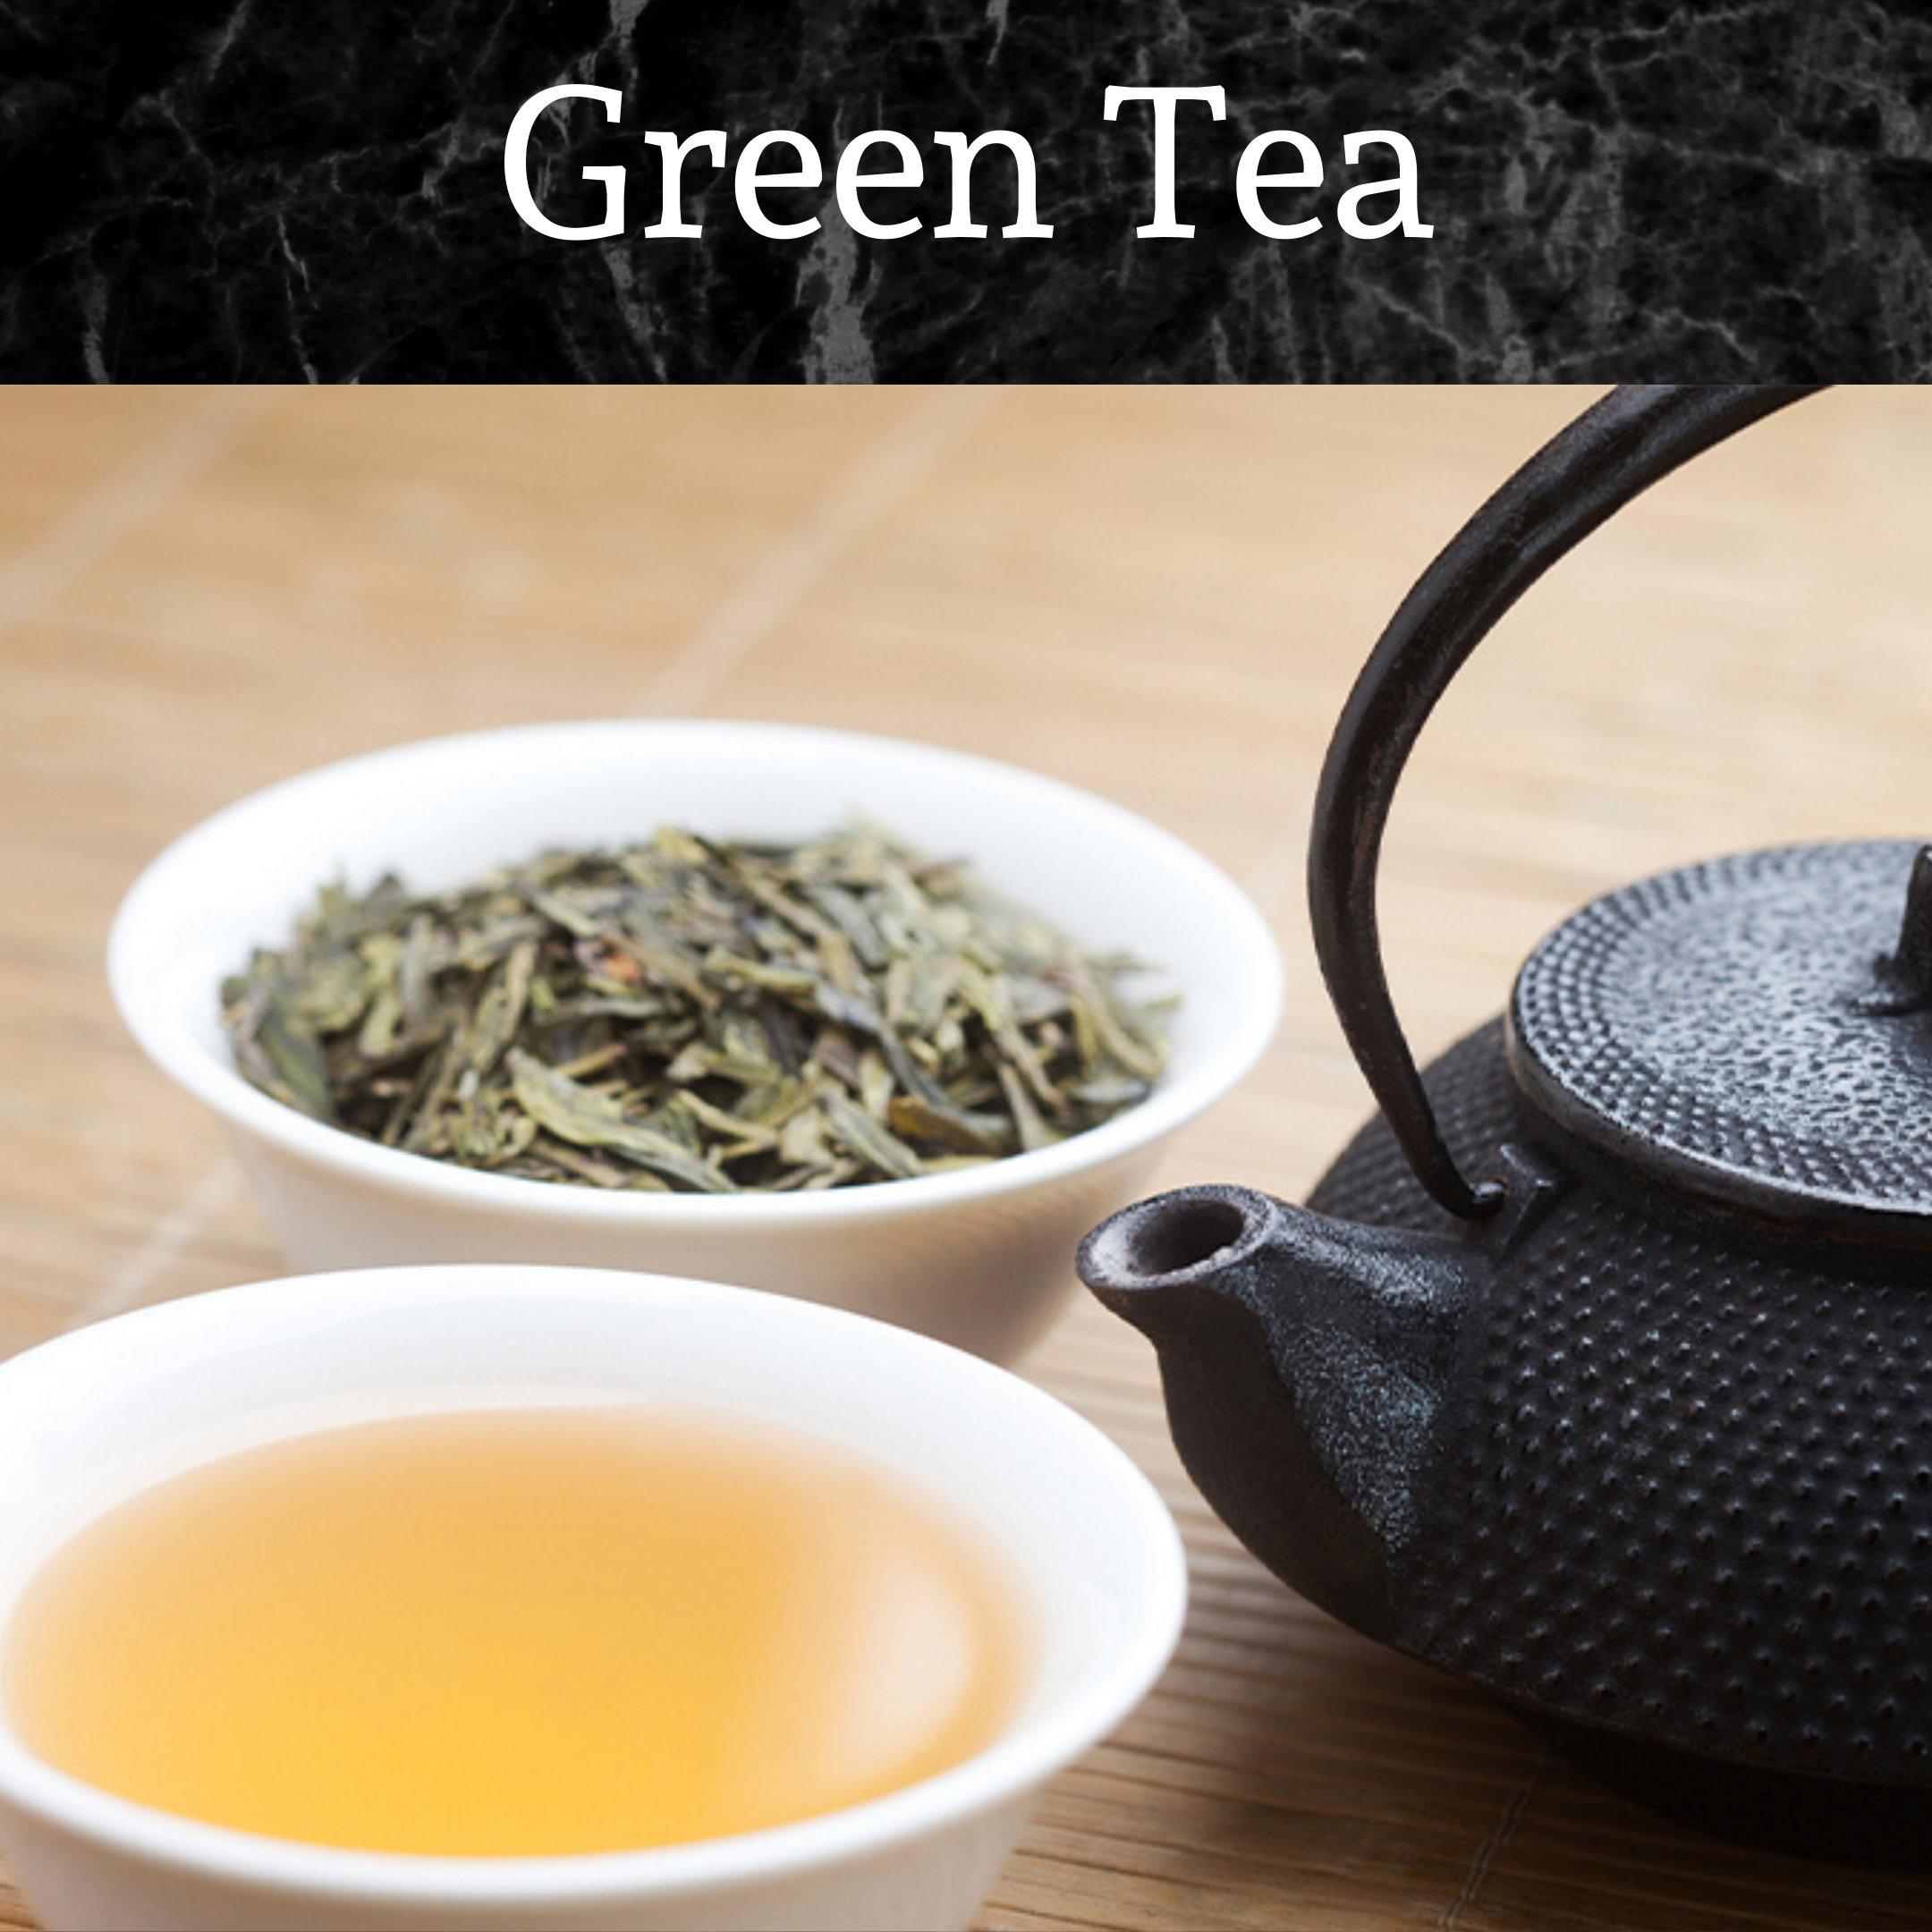 Green tea leaves, brewed tea and a kettle